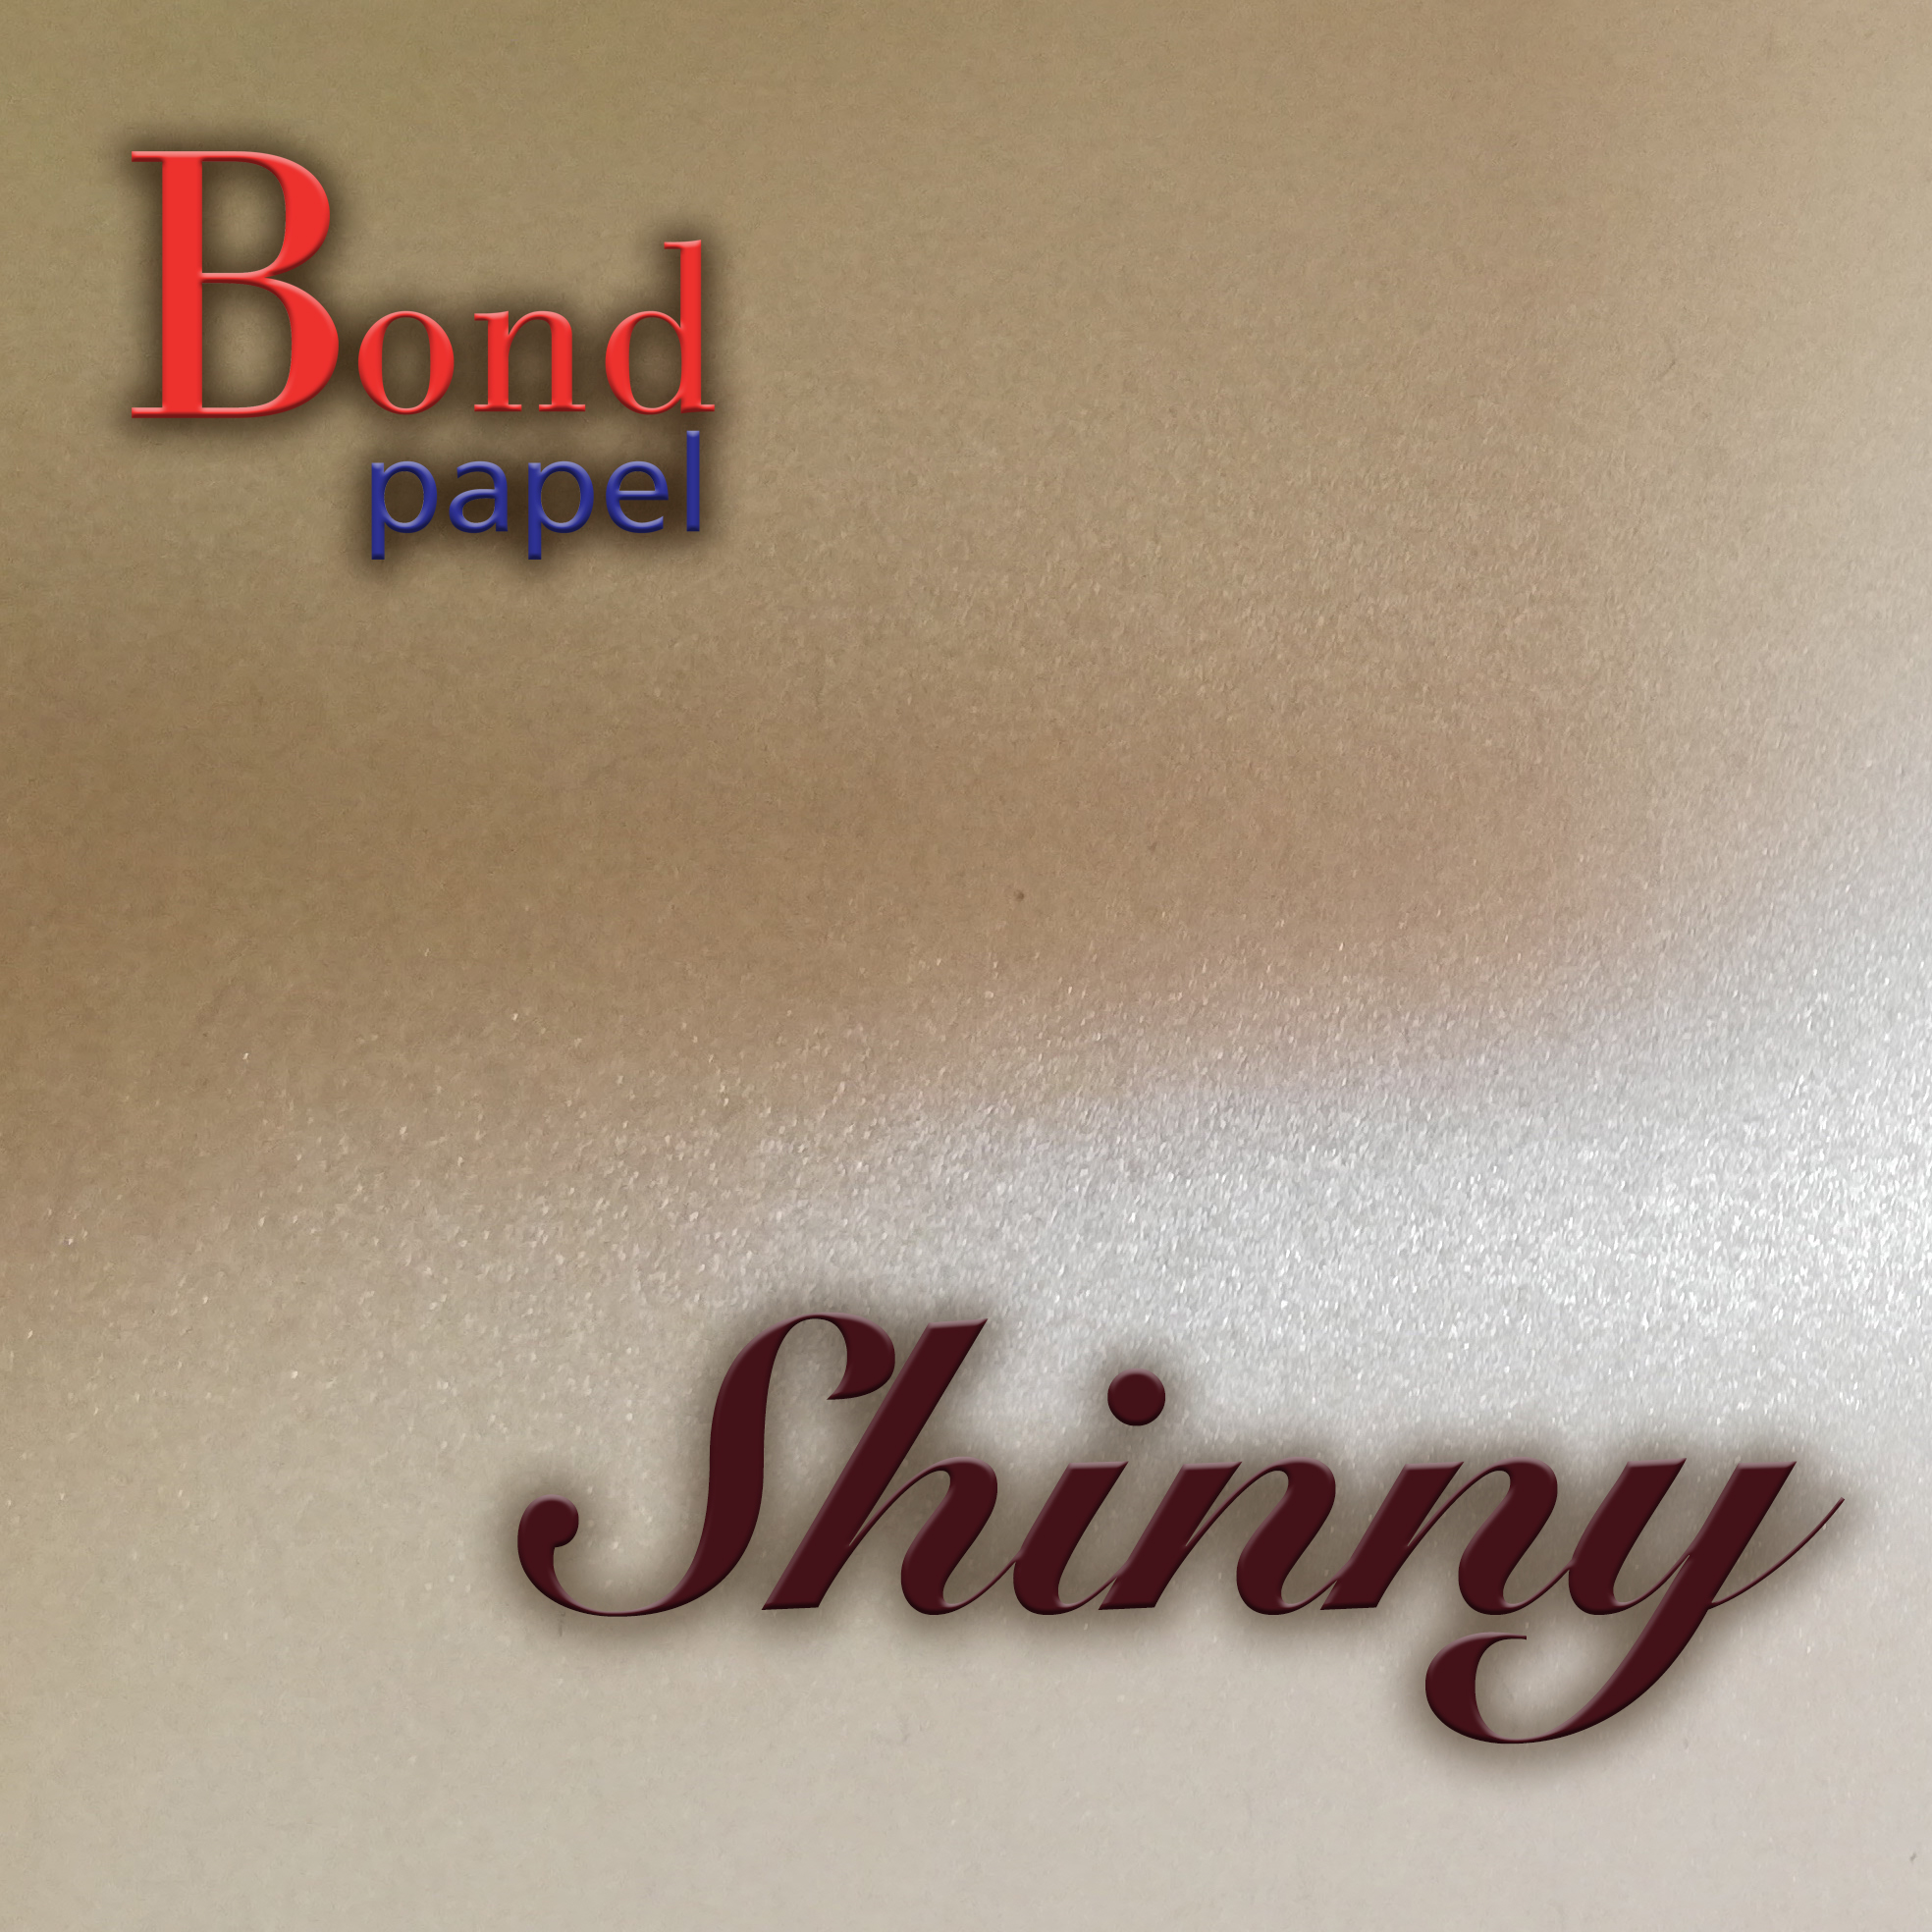 Papel y Cartulina Shinny Bondpapel